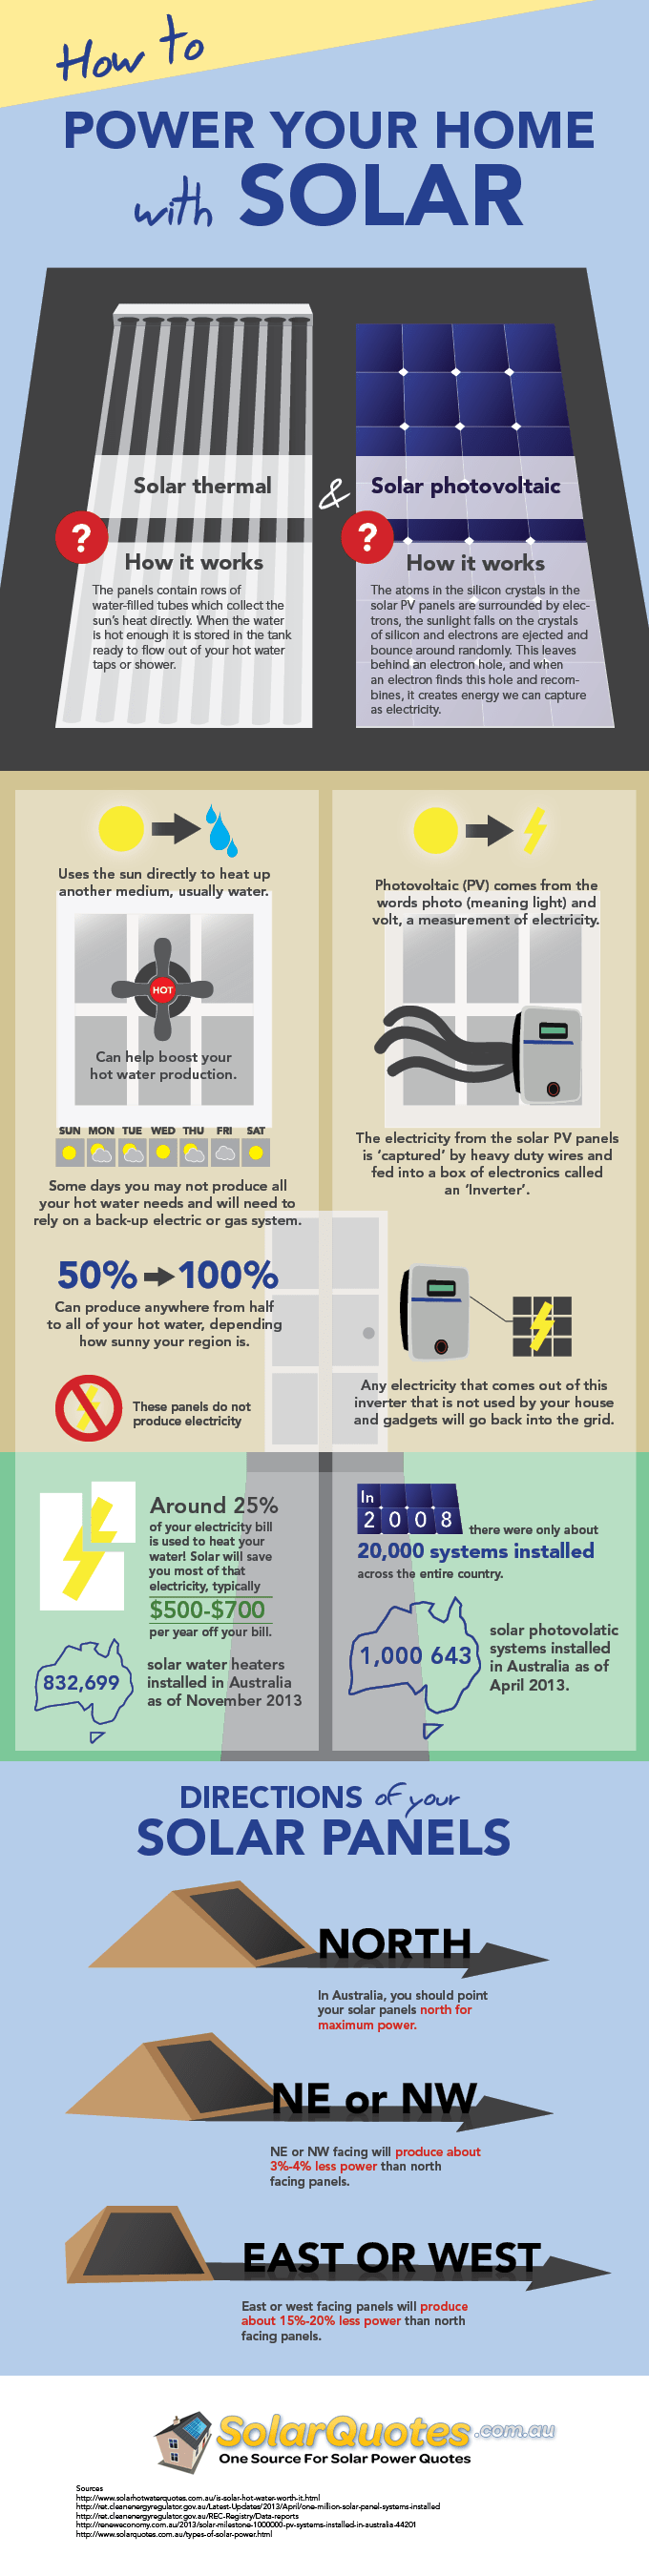 solar at home: an infographic